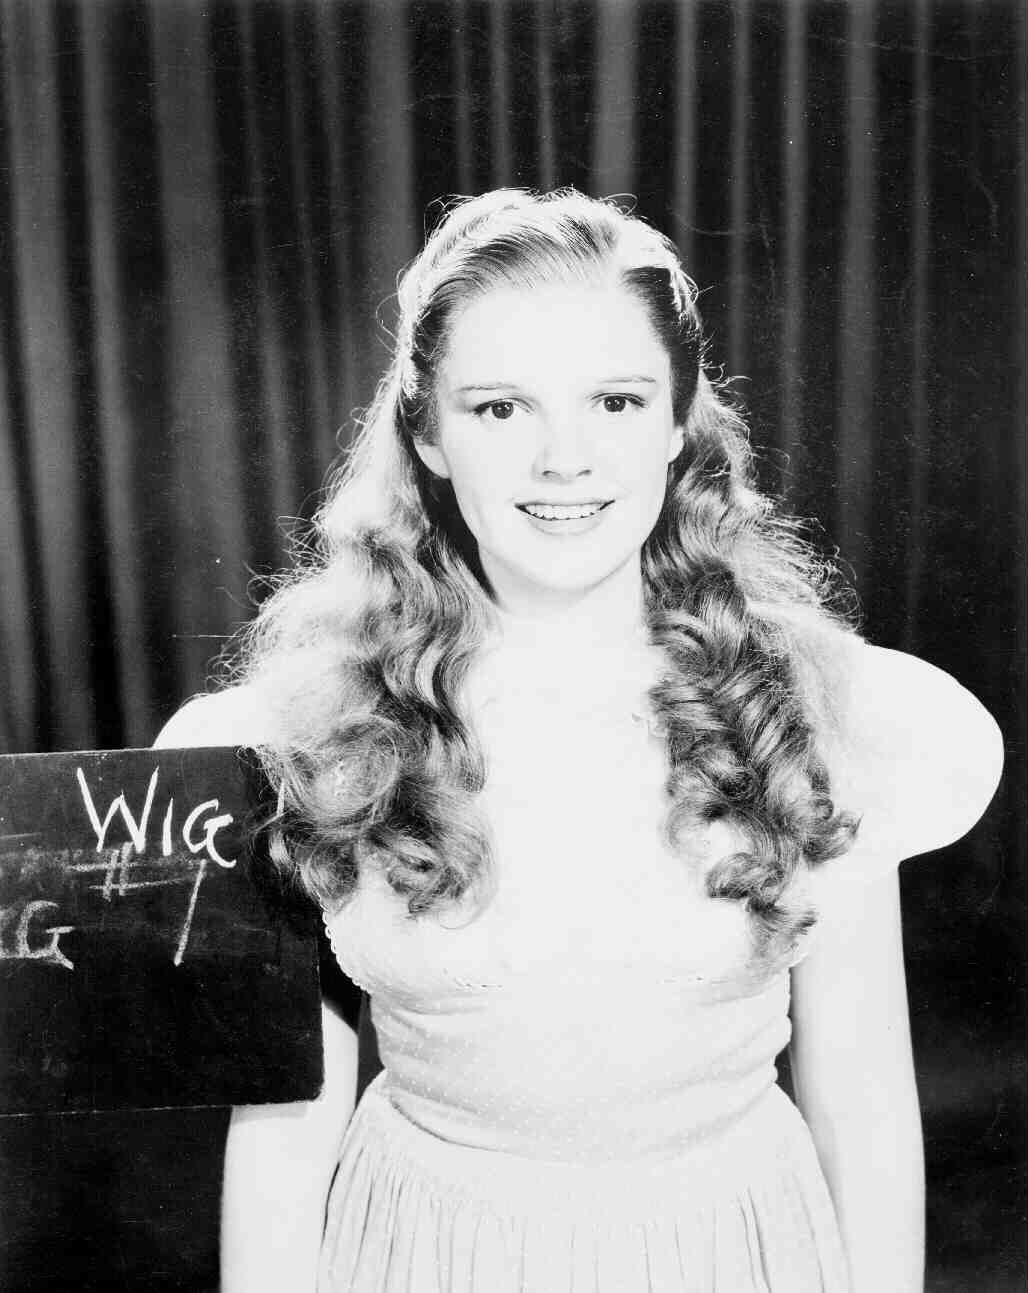 Judy Garland as Dorothy Gale in